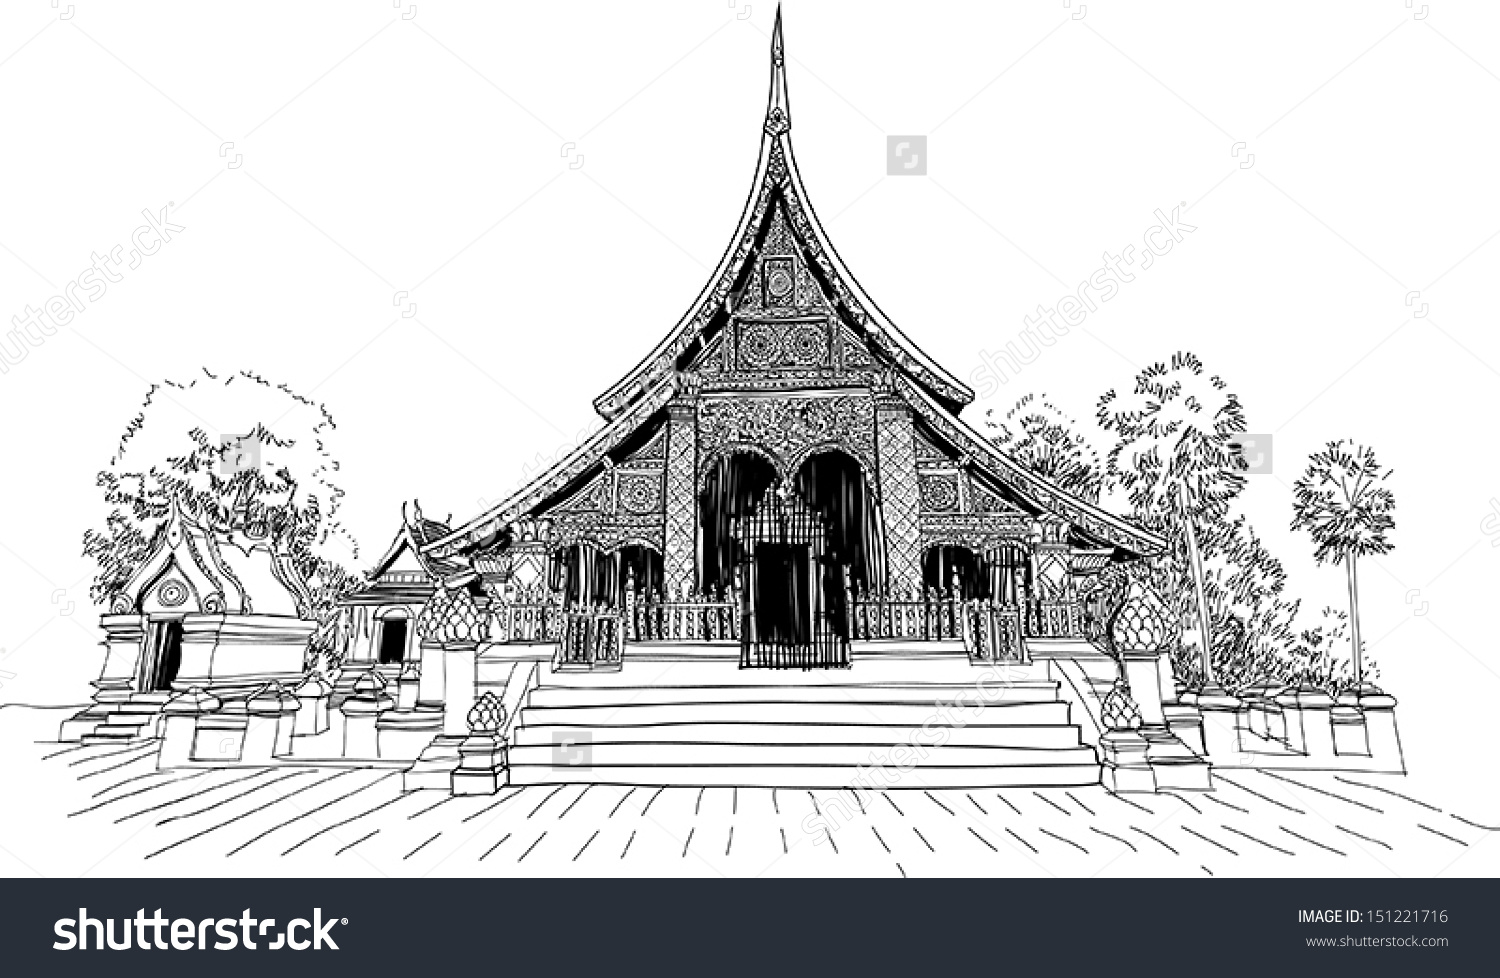 Illustration Wat Xieng Thong Buddhist Temple Stock Vector.